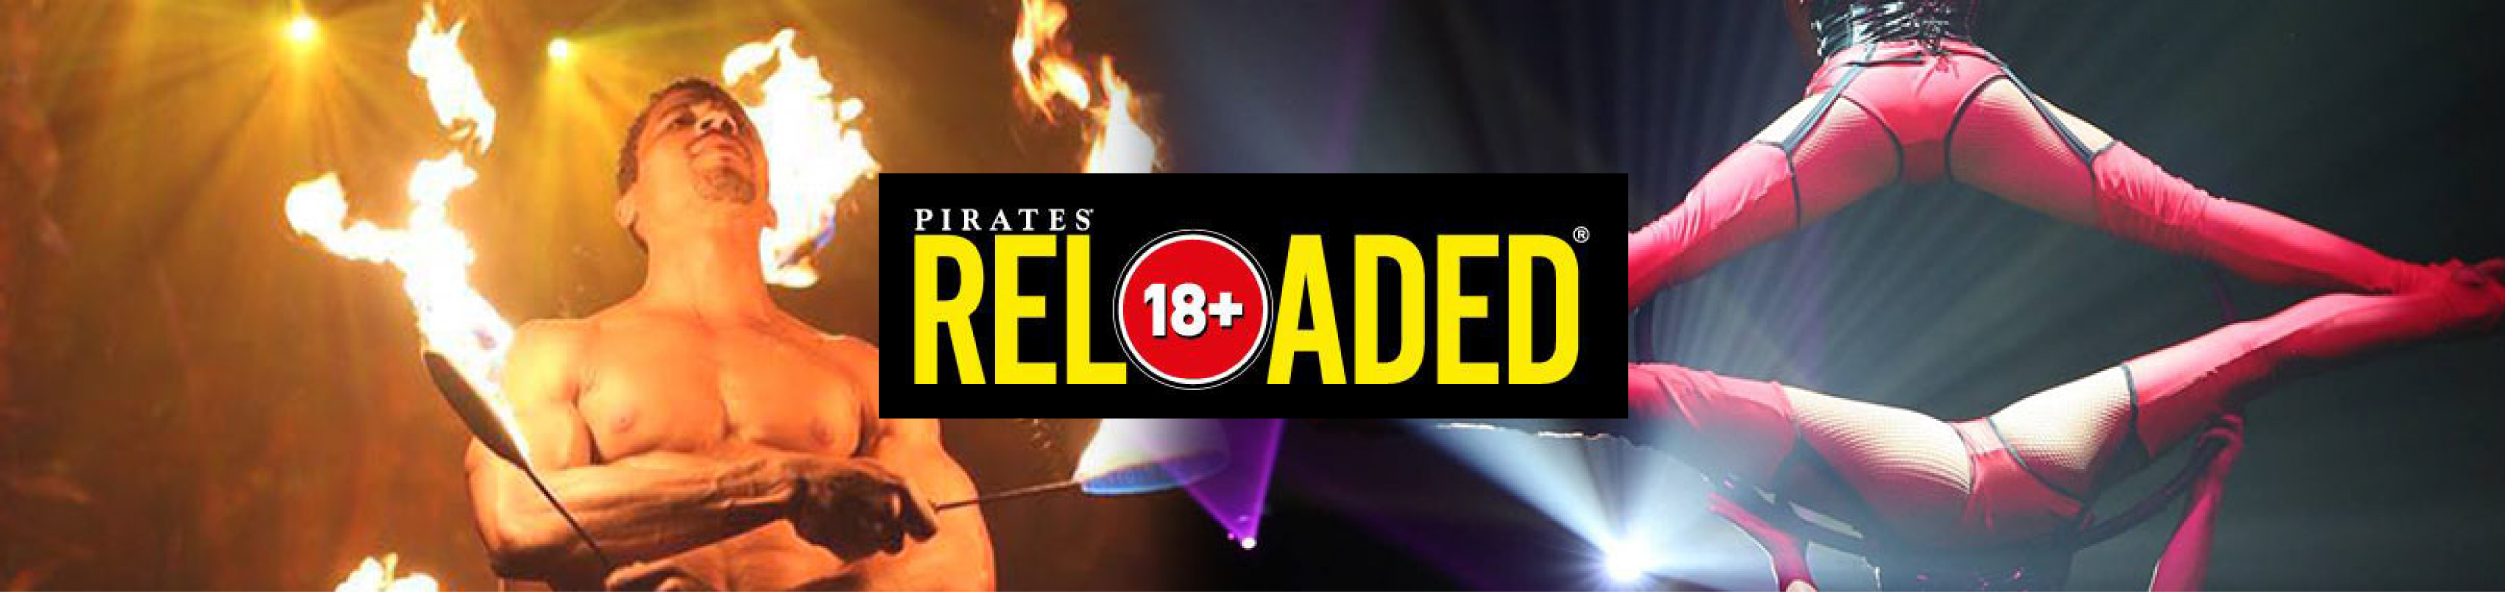 magalufevents reload banner